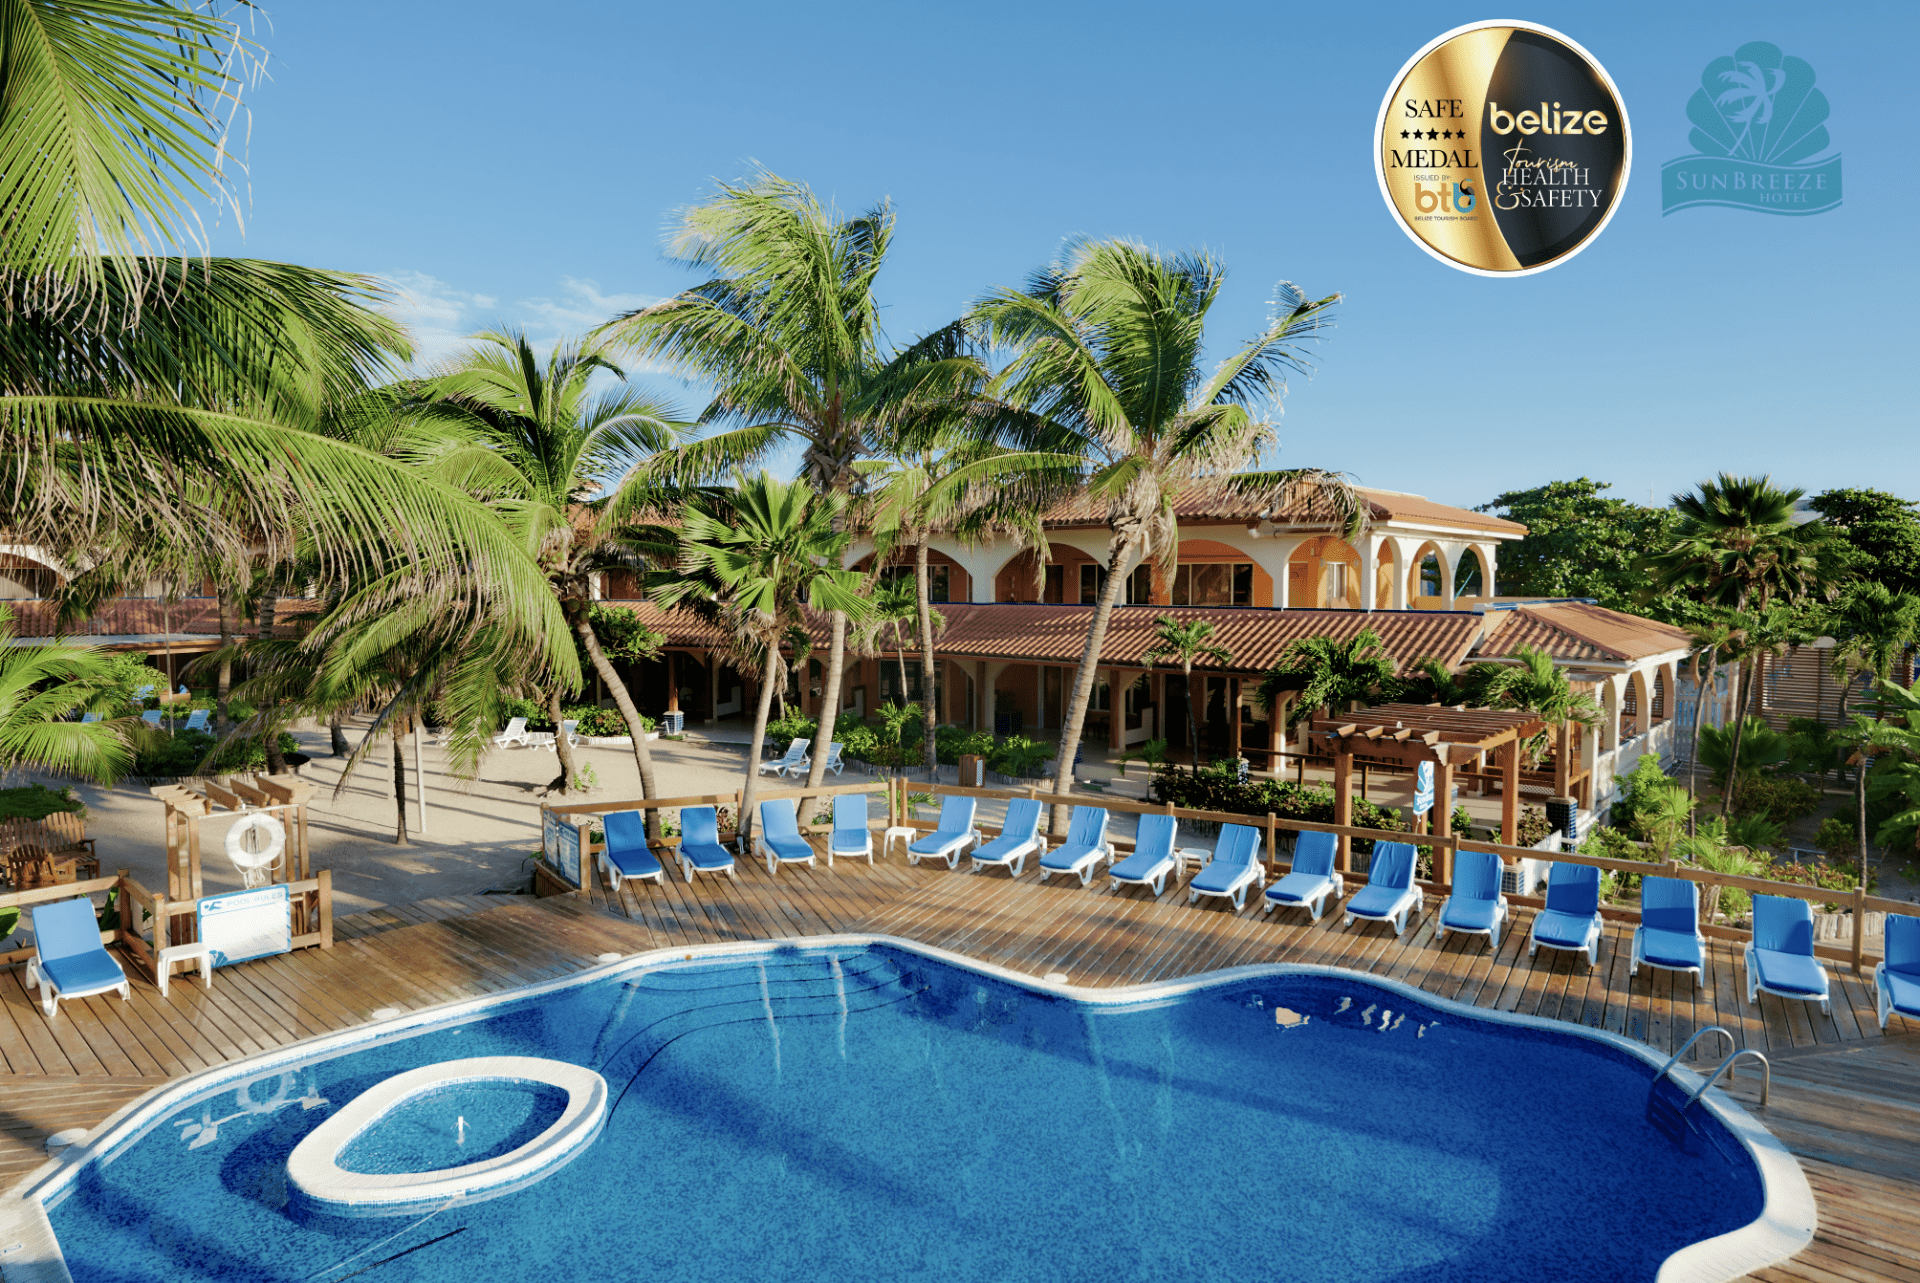 belize gold standard hotel approved ambergris caye